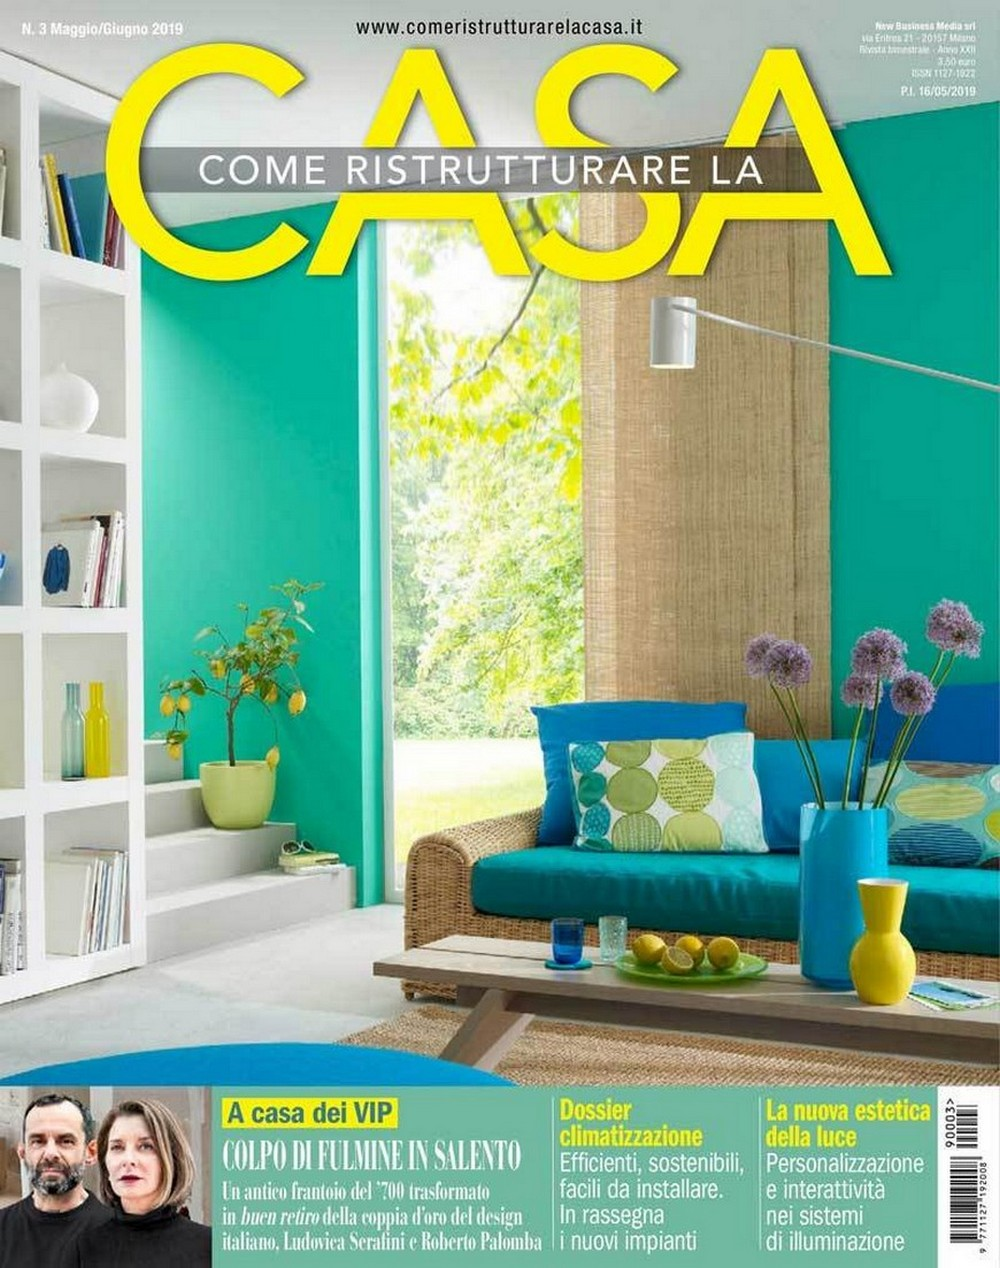 Design Your Home With The Best Interior Design Magazines At Cersaie cersaie Design Your Home With The Best Interior Design Magazines At Cersaie Design Your Home With The Best Interior Design Magazines At Cersaie 5